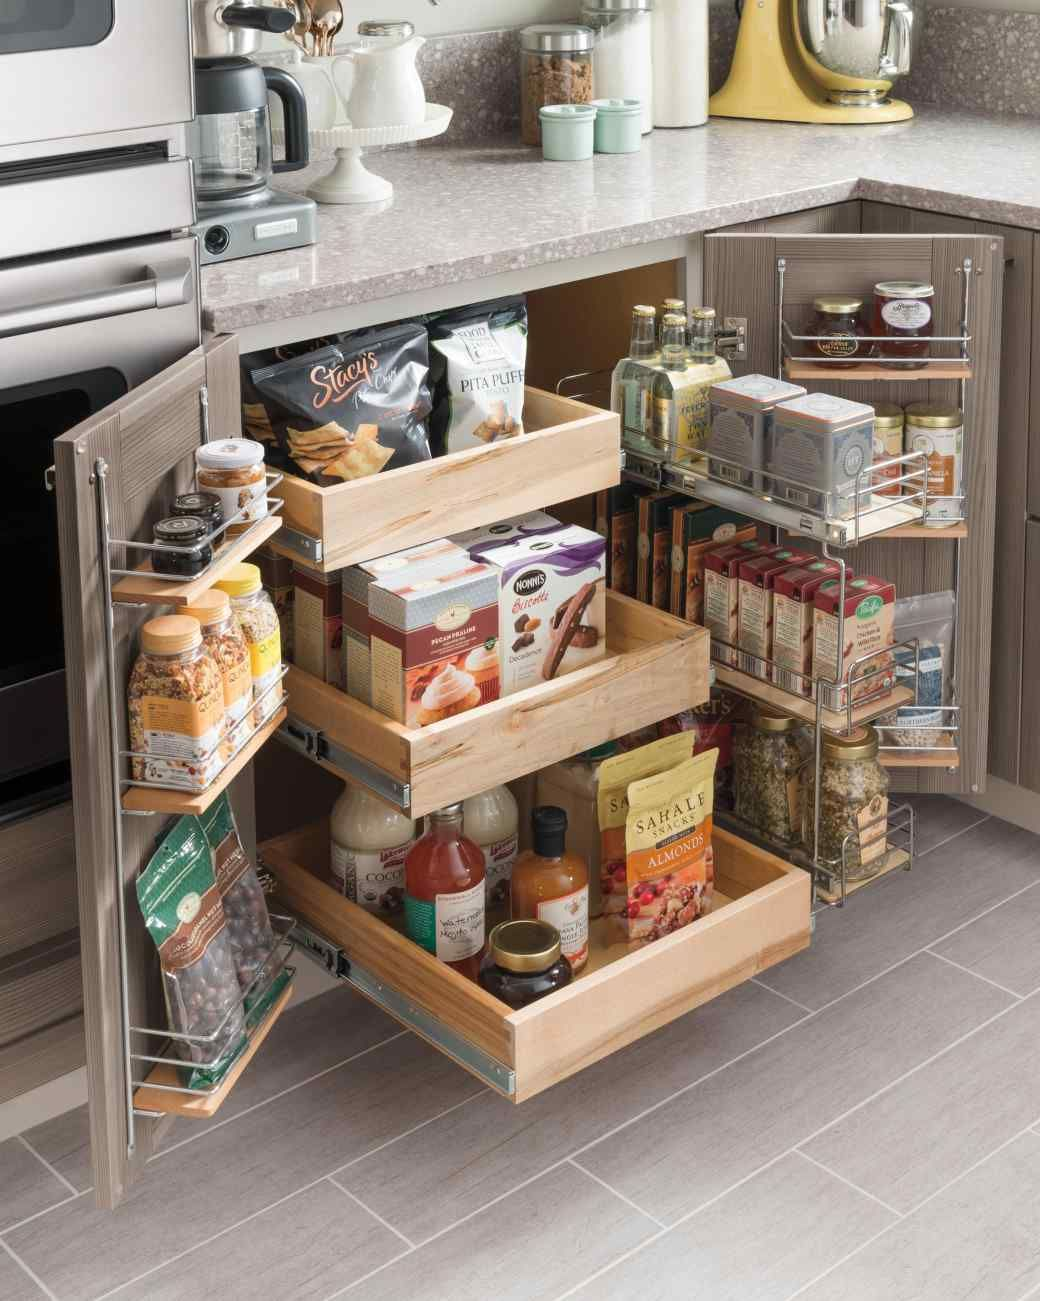 Kitchen storage ideas which will help you to organize the space